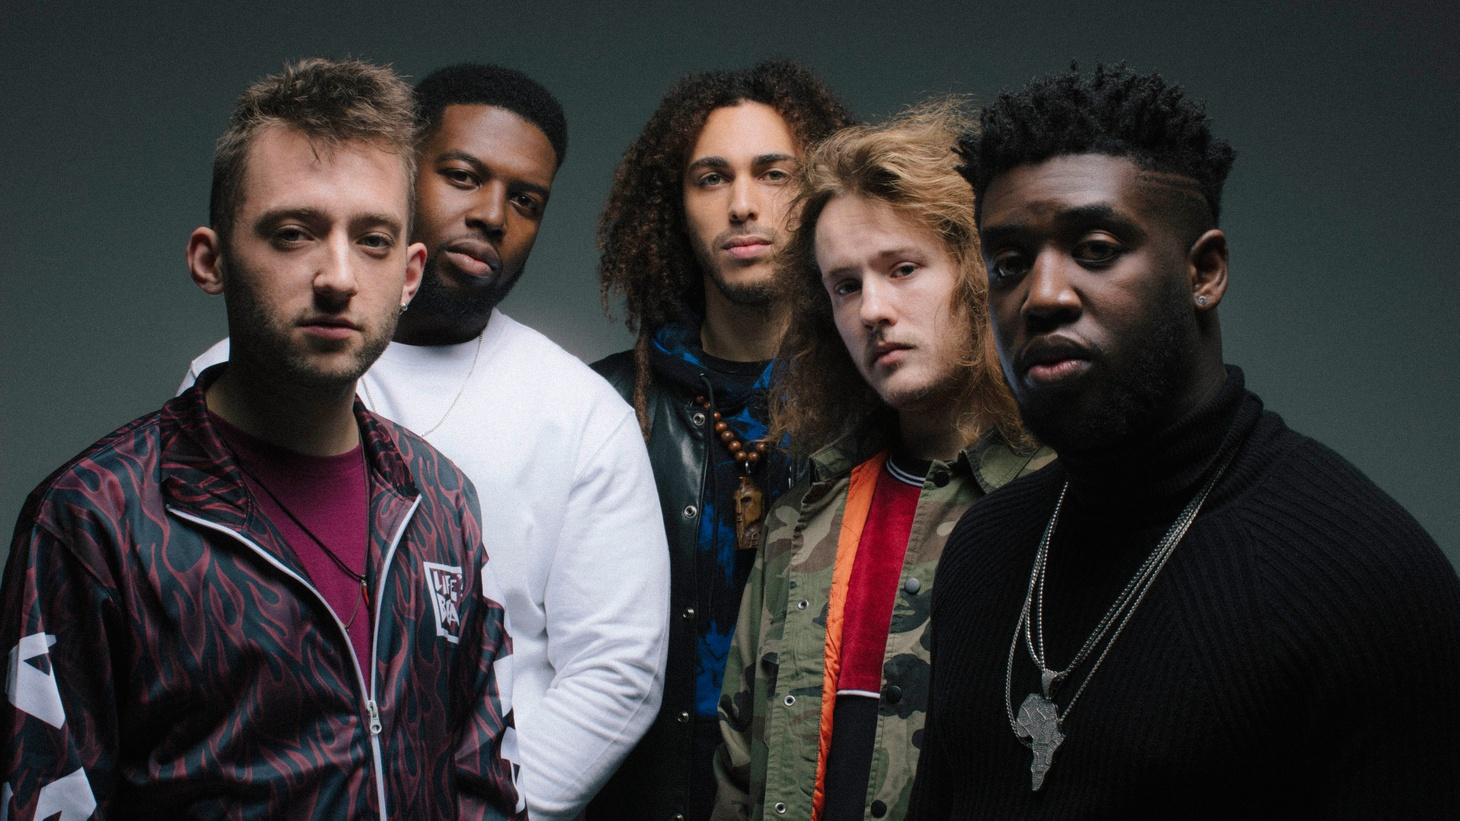 """Based in London, Ezra Collective announced their debut album for late April. Putting a fresh spin on jazz, we turn to """"Reason in Disguise,"""" featuring an artist we're enamored by: Jorja Smith."""